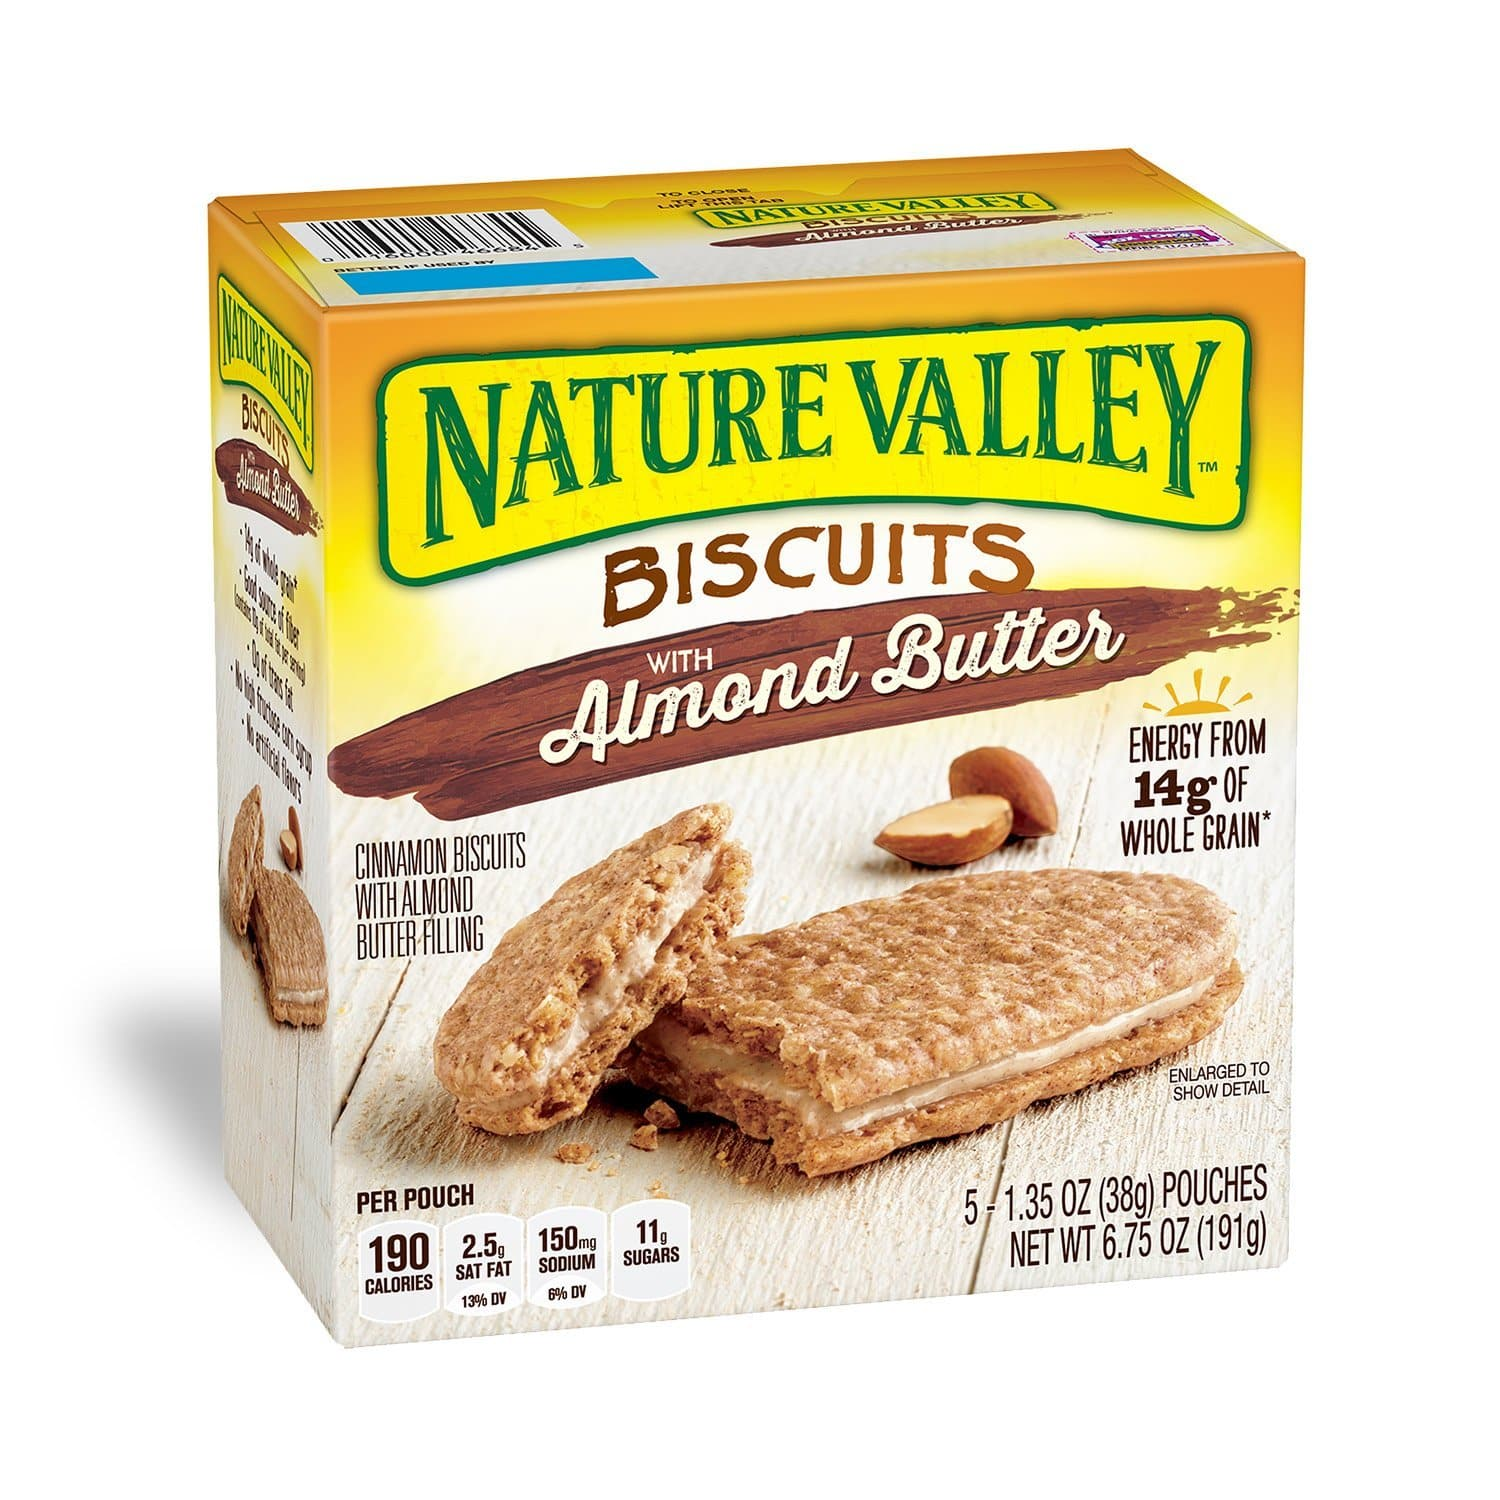 Nature Valley Breakfast Biscuits with Nut Filling, 5 Bars, Pack of 12 [Almond Butter or Coconut Butter] $22.50 w/ $6 Coupon and S&S (5%)